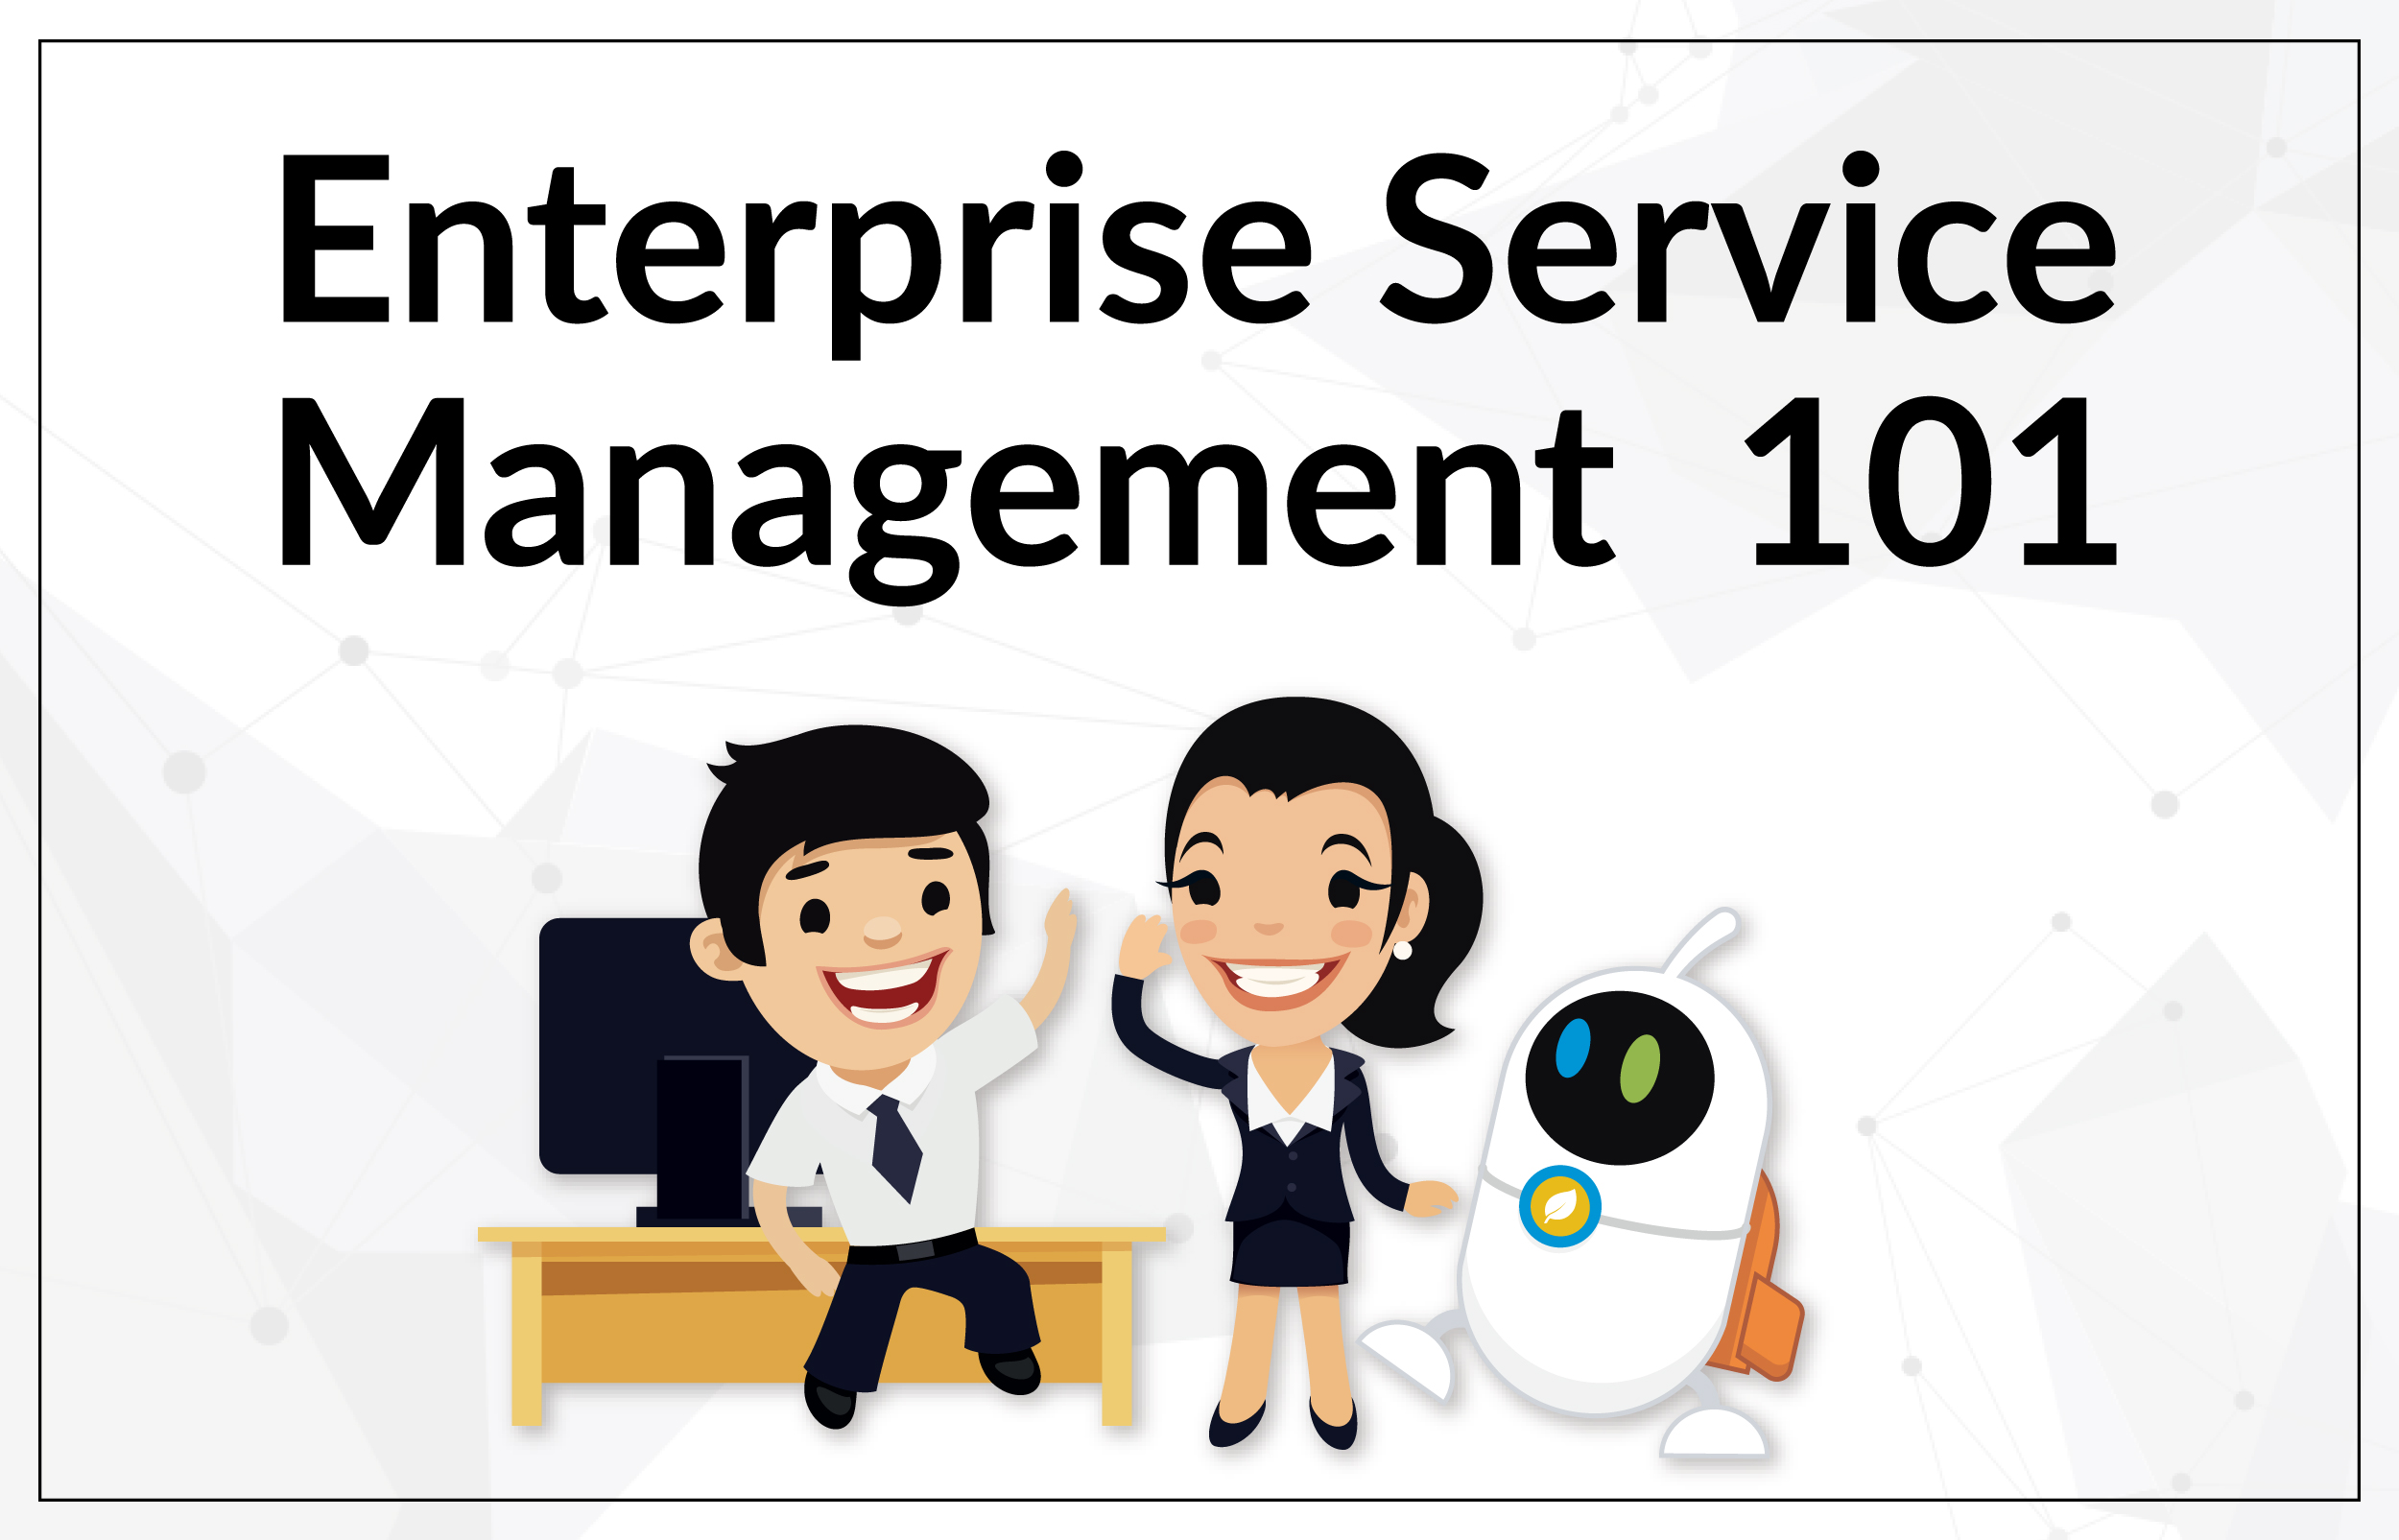 Enterprise Service Management 101